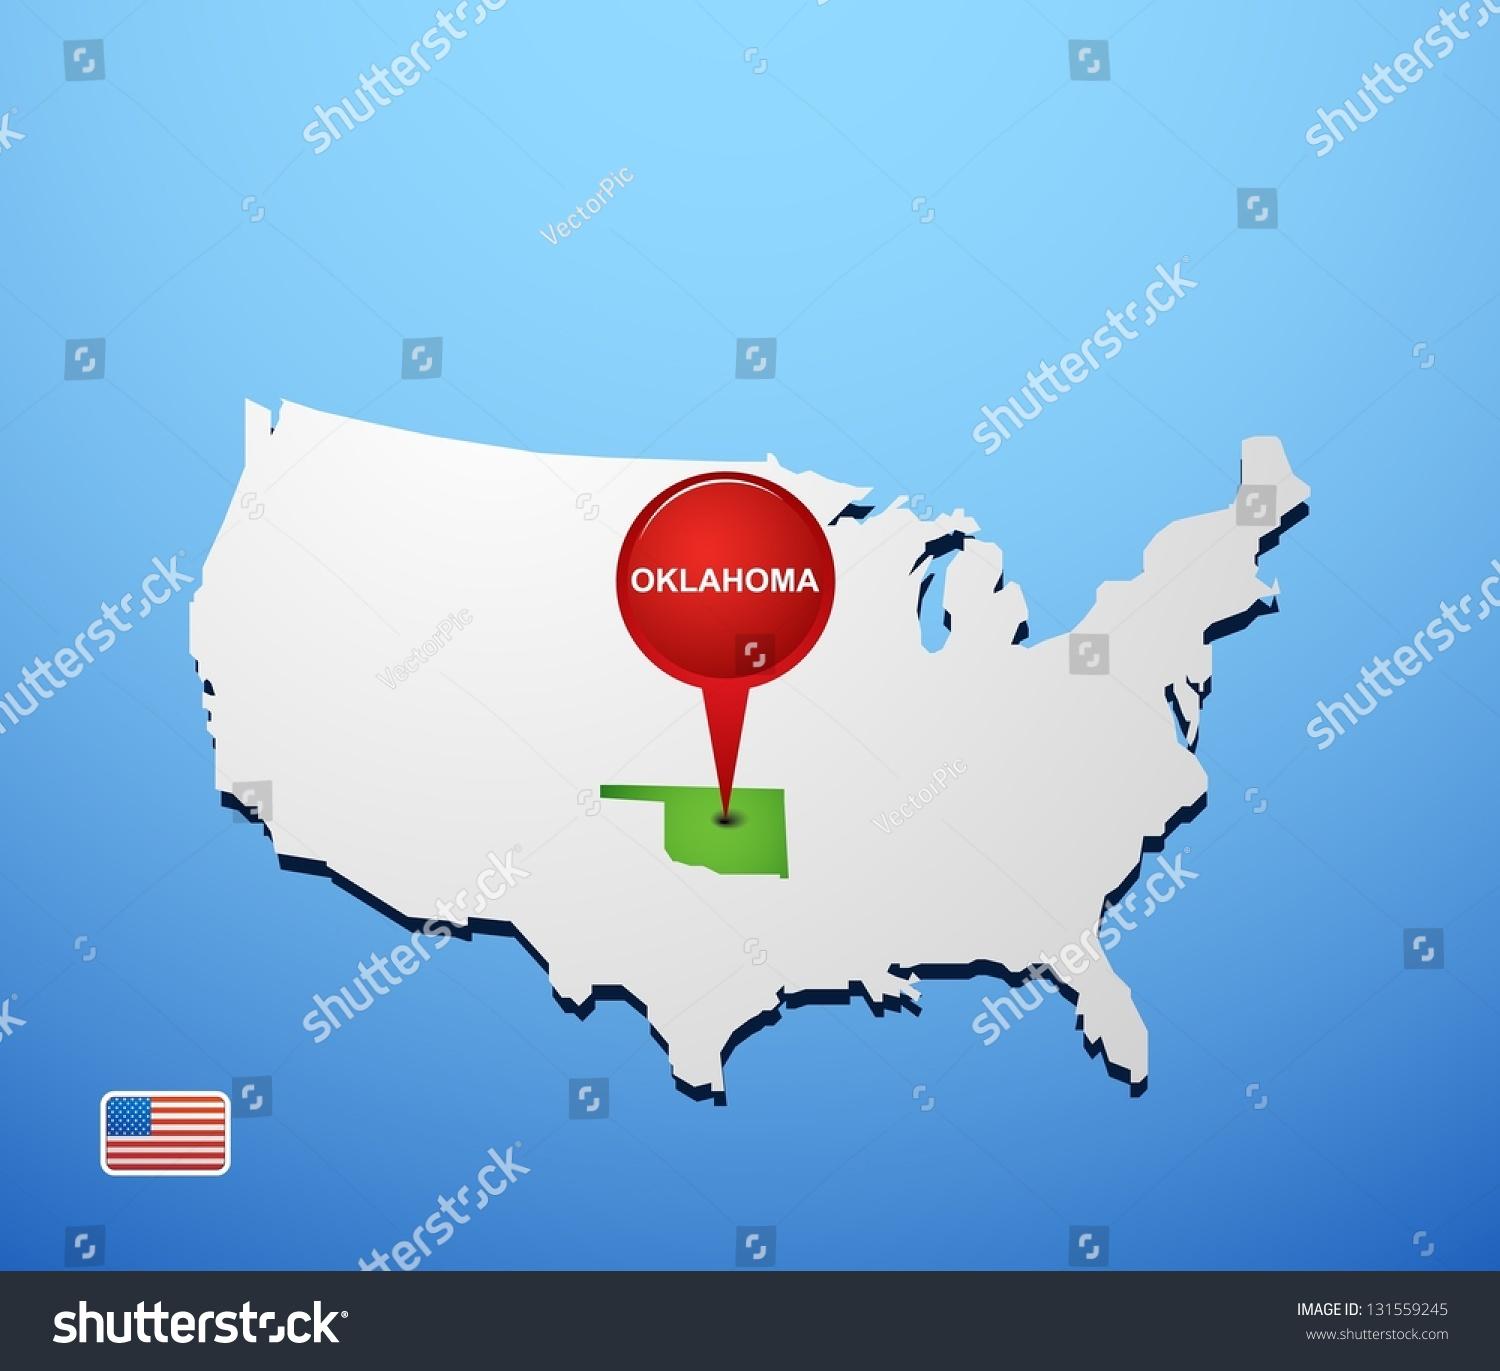 Oklahoma On Usa Map Stock Vector Shutterstock - Usa map with oklahoma